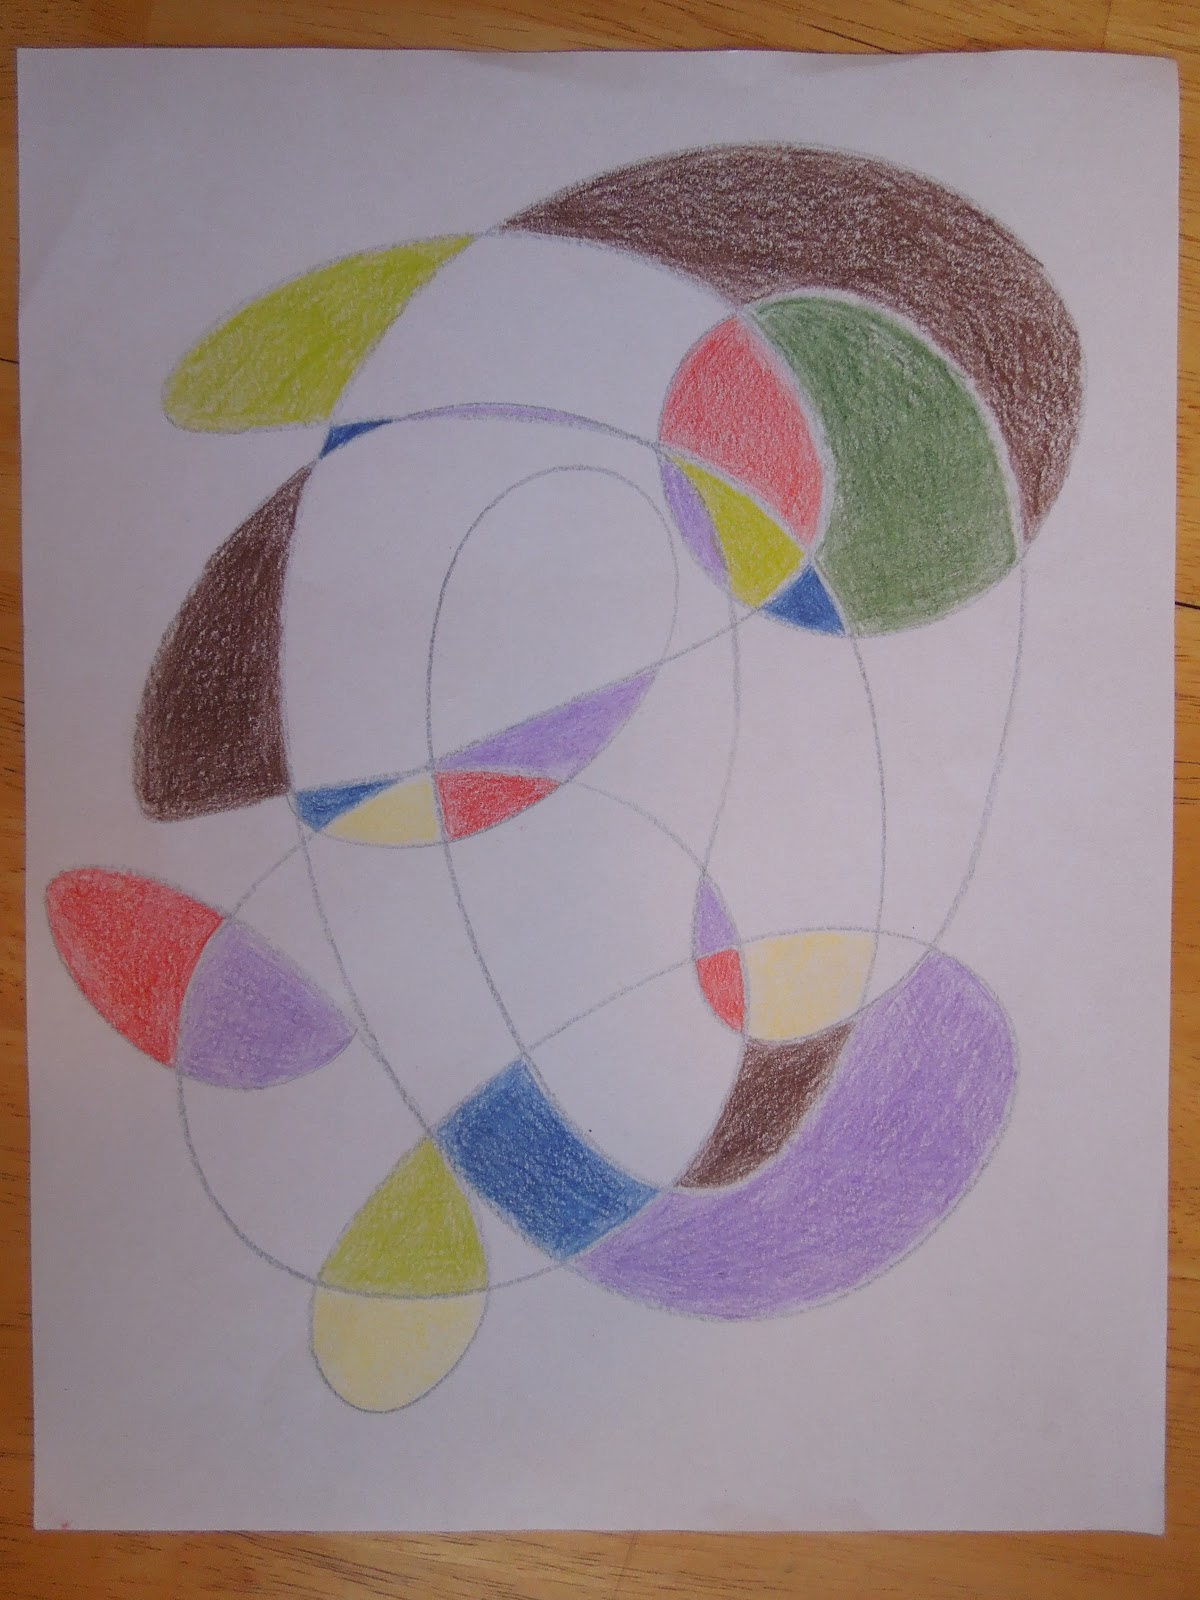 Scribble Drawing In Art Therapy : Behavioral interventions for kids scribble art